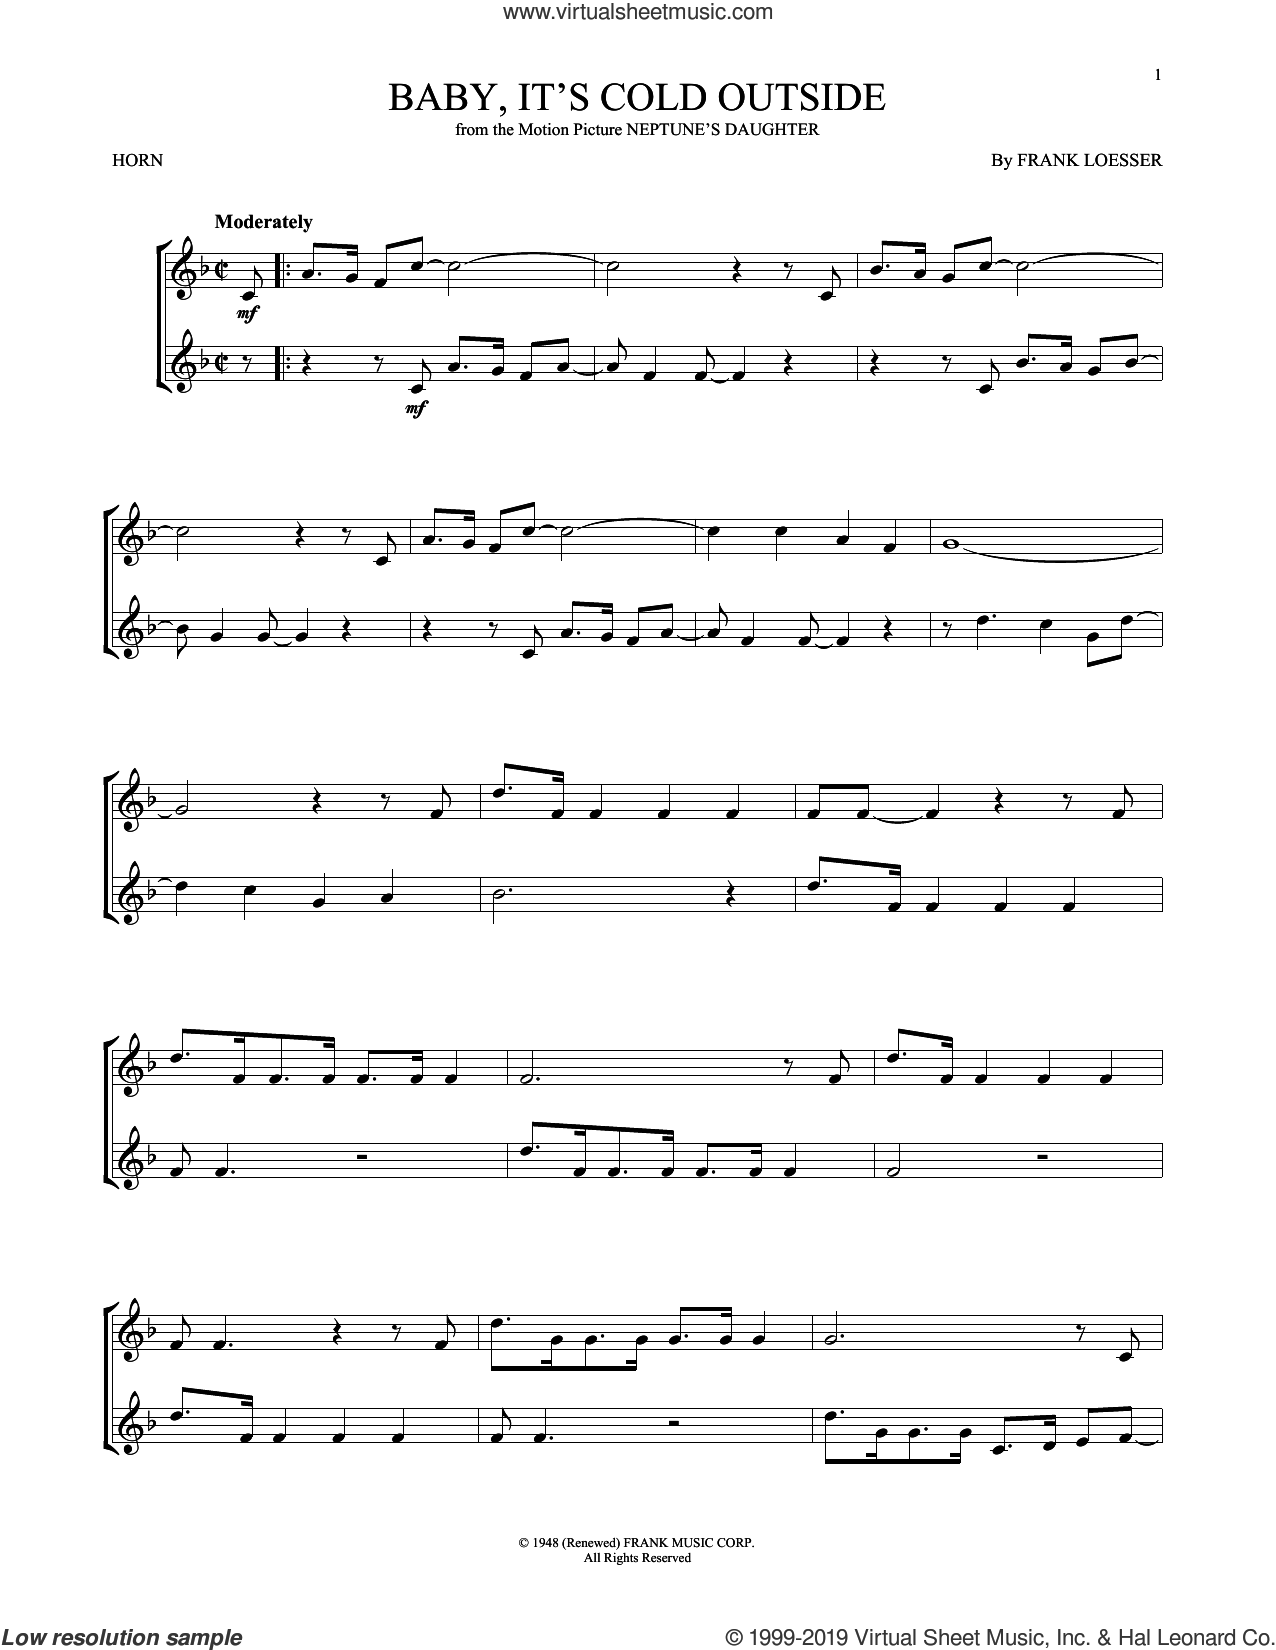 Baby, It's Cold Outside sheet music for horn solo by Frank Loesser, intermediate skill level